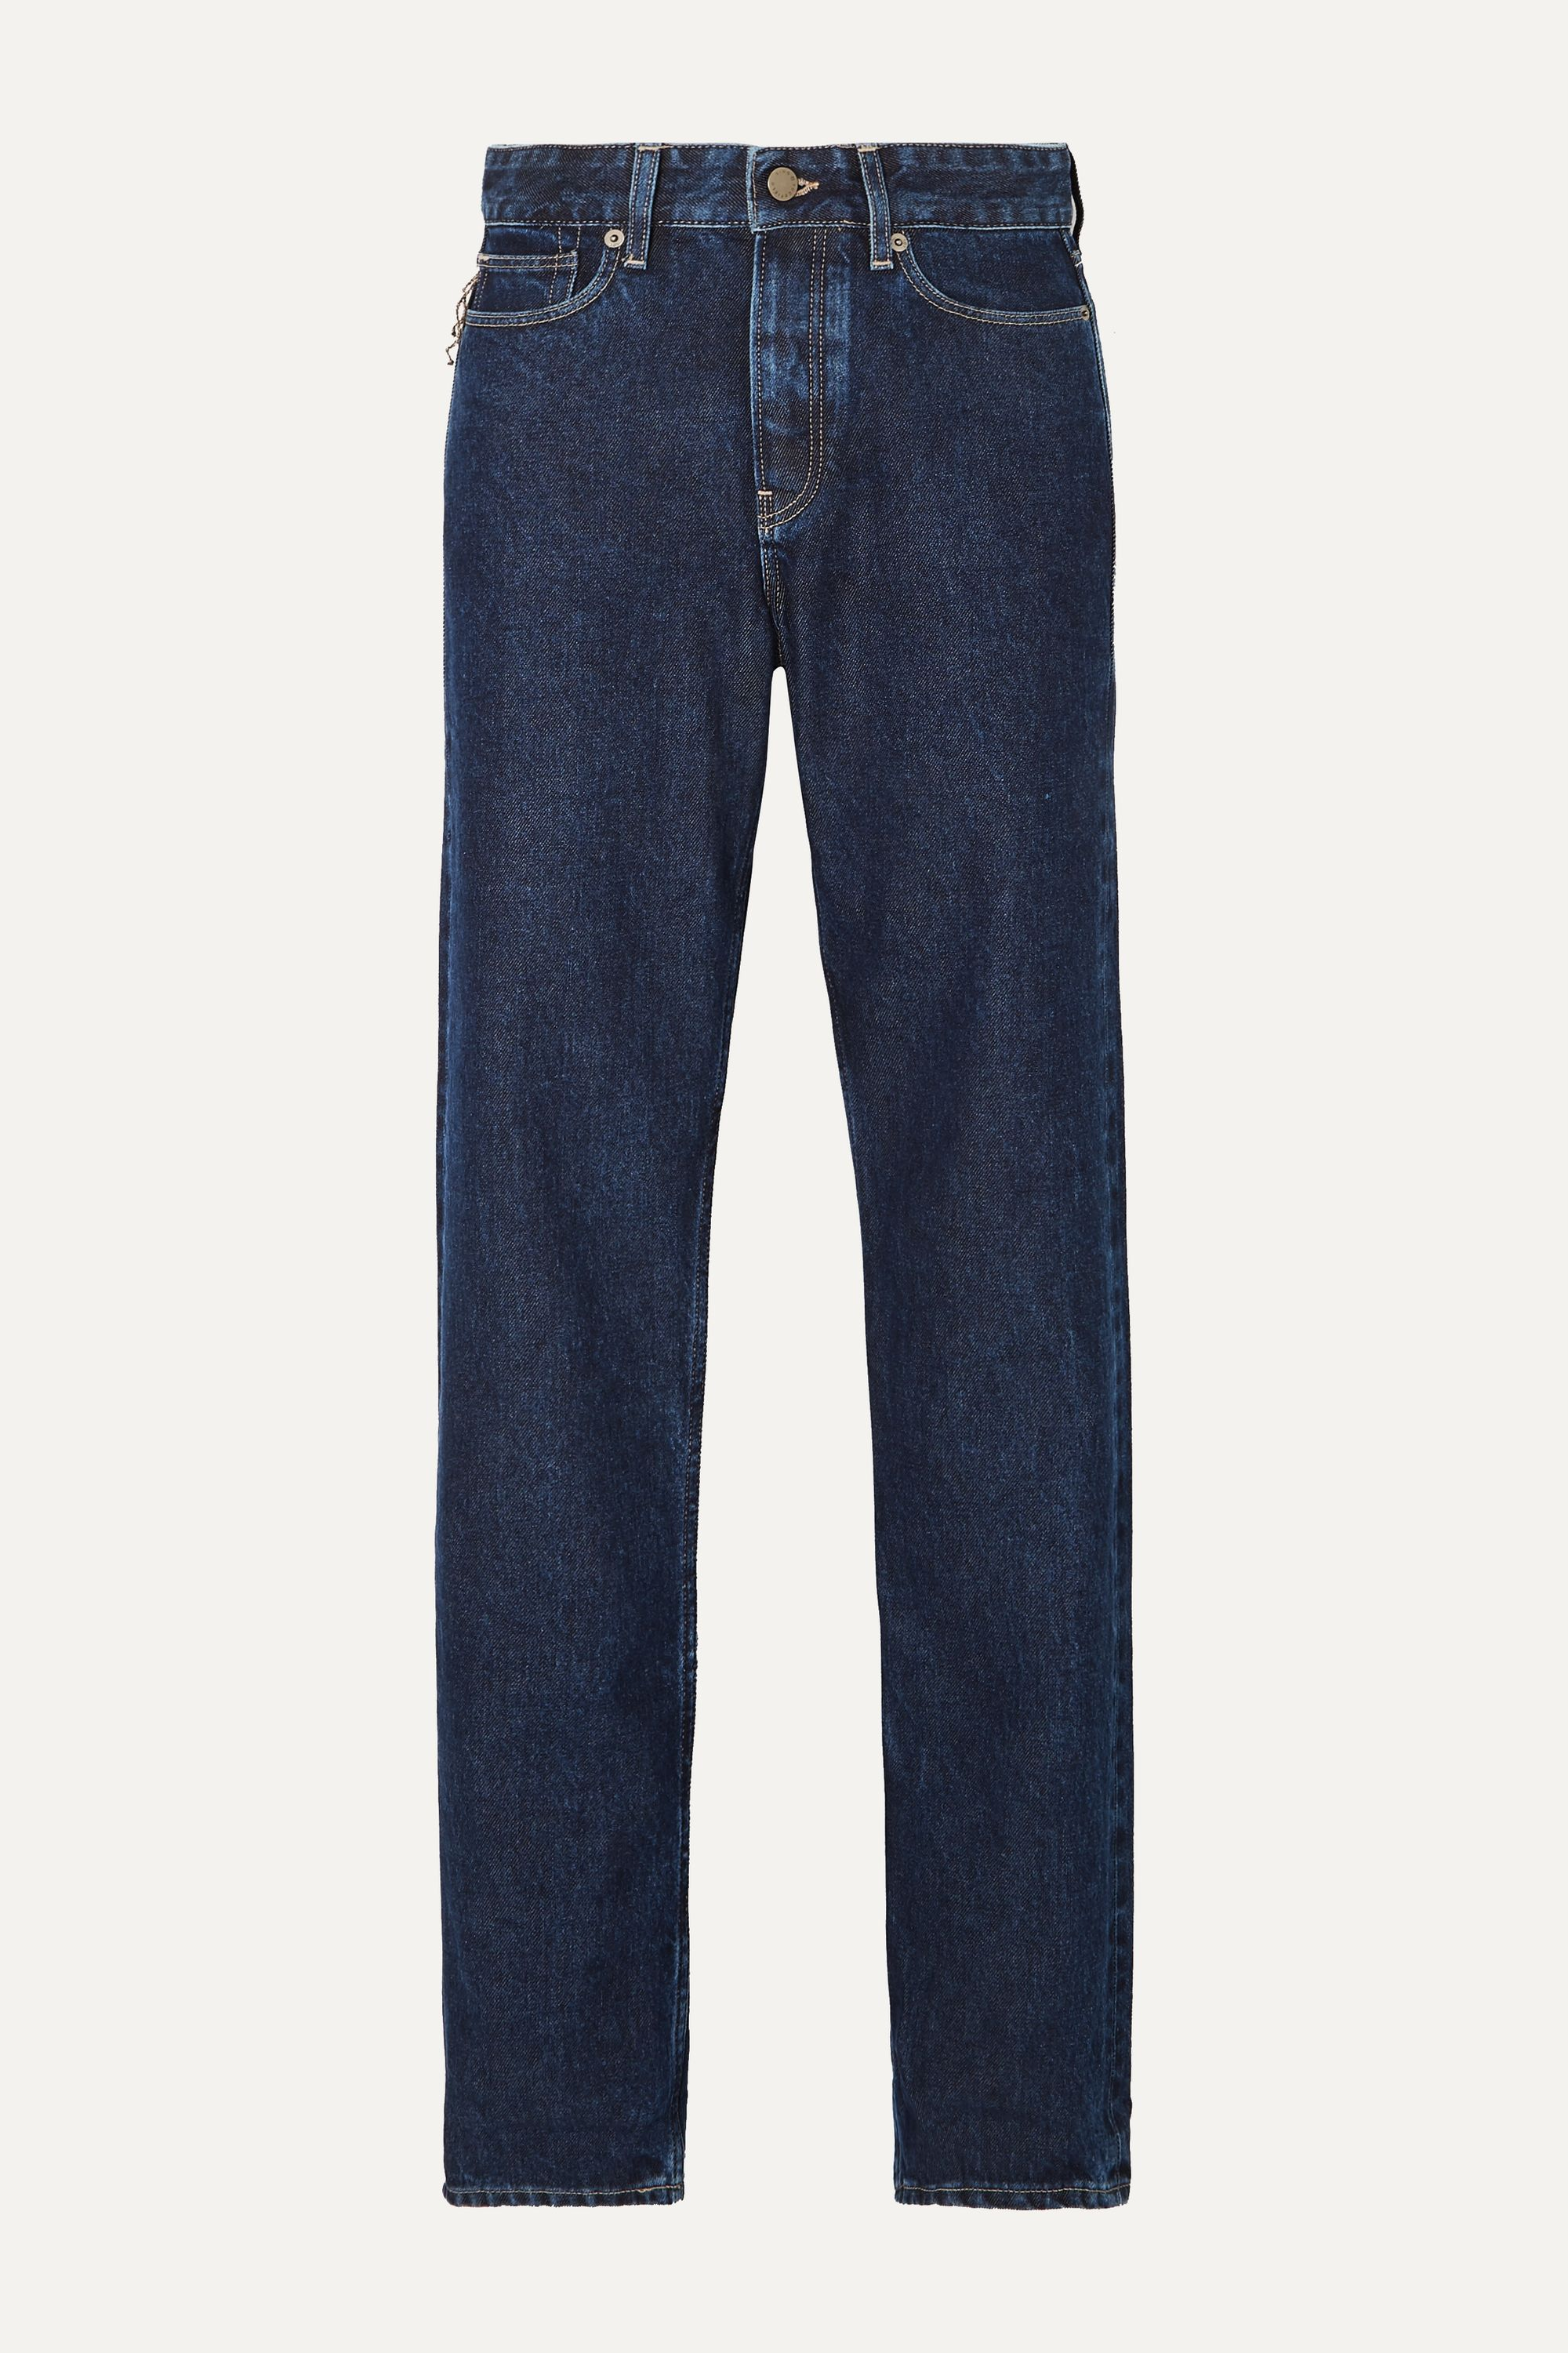 King & Tuckfield Briony high-rise straight-leg jeans